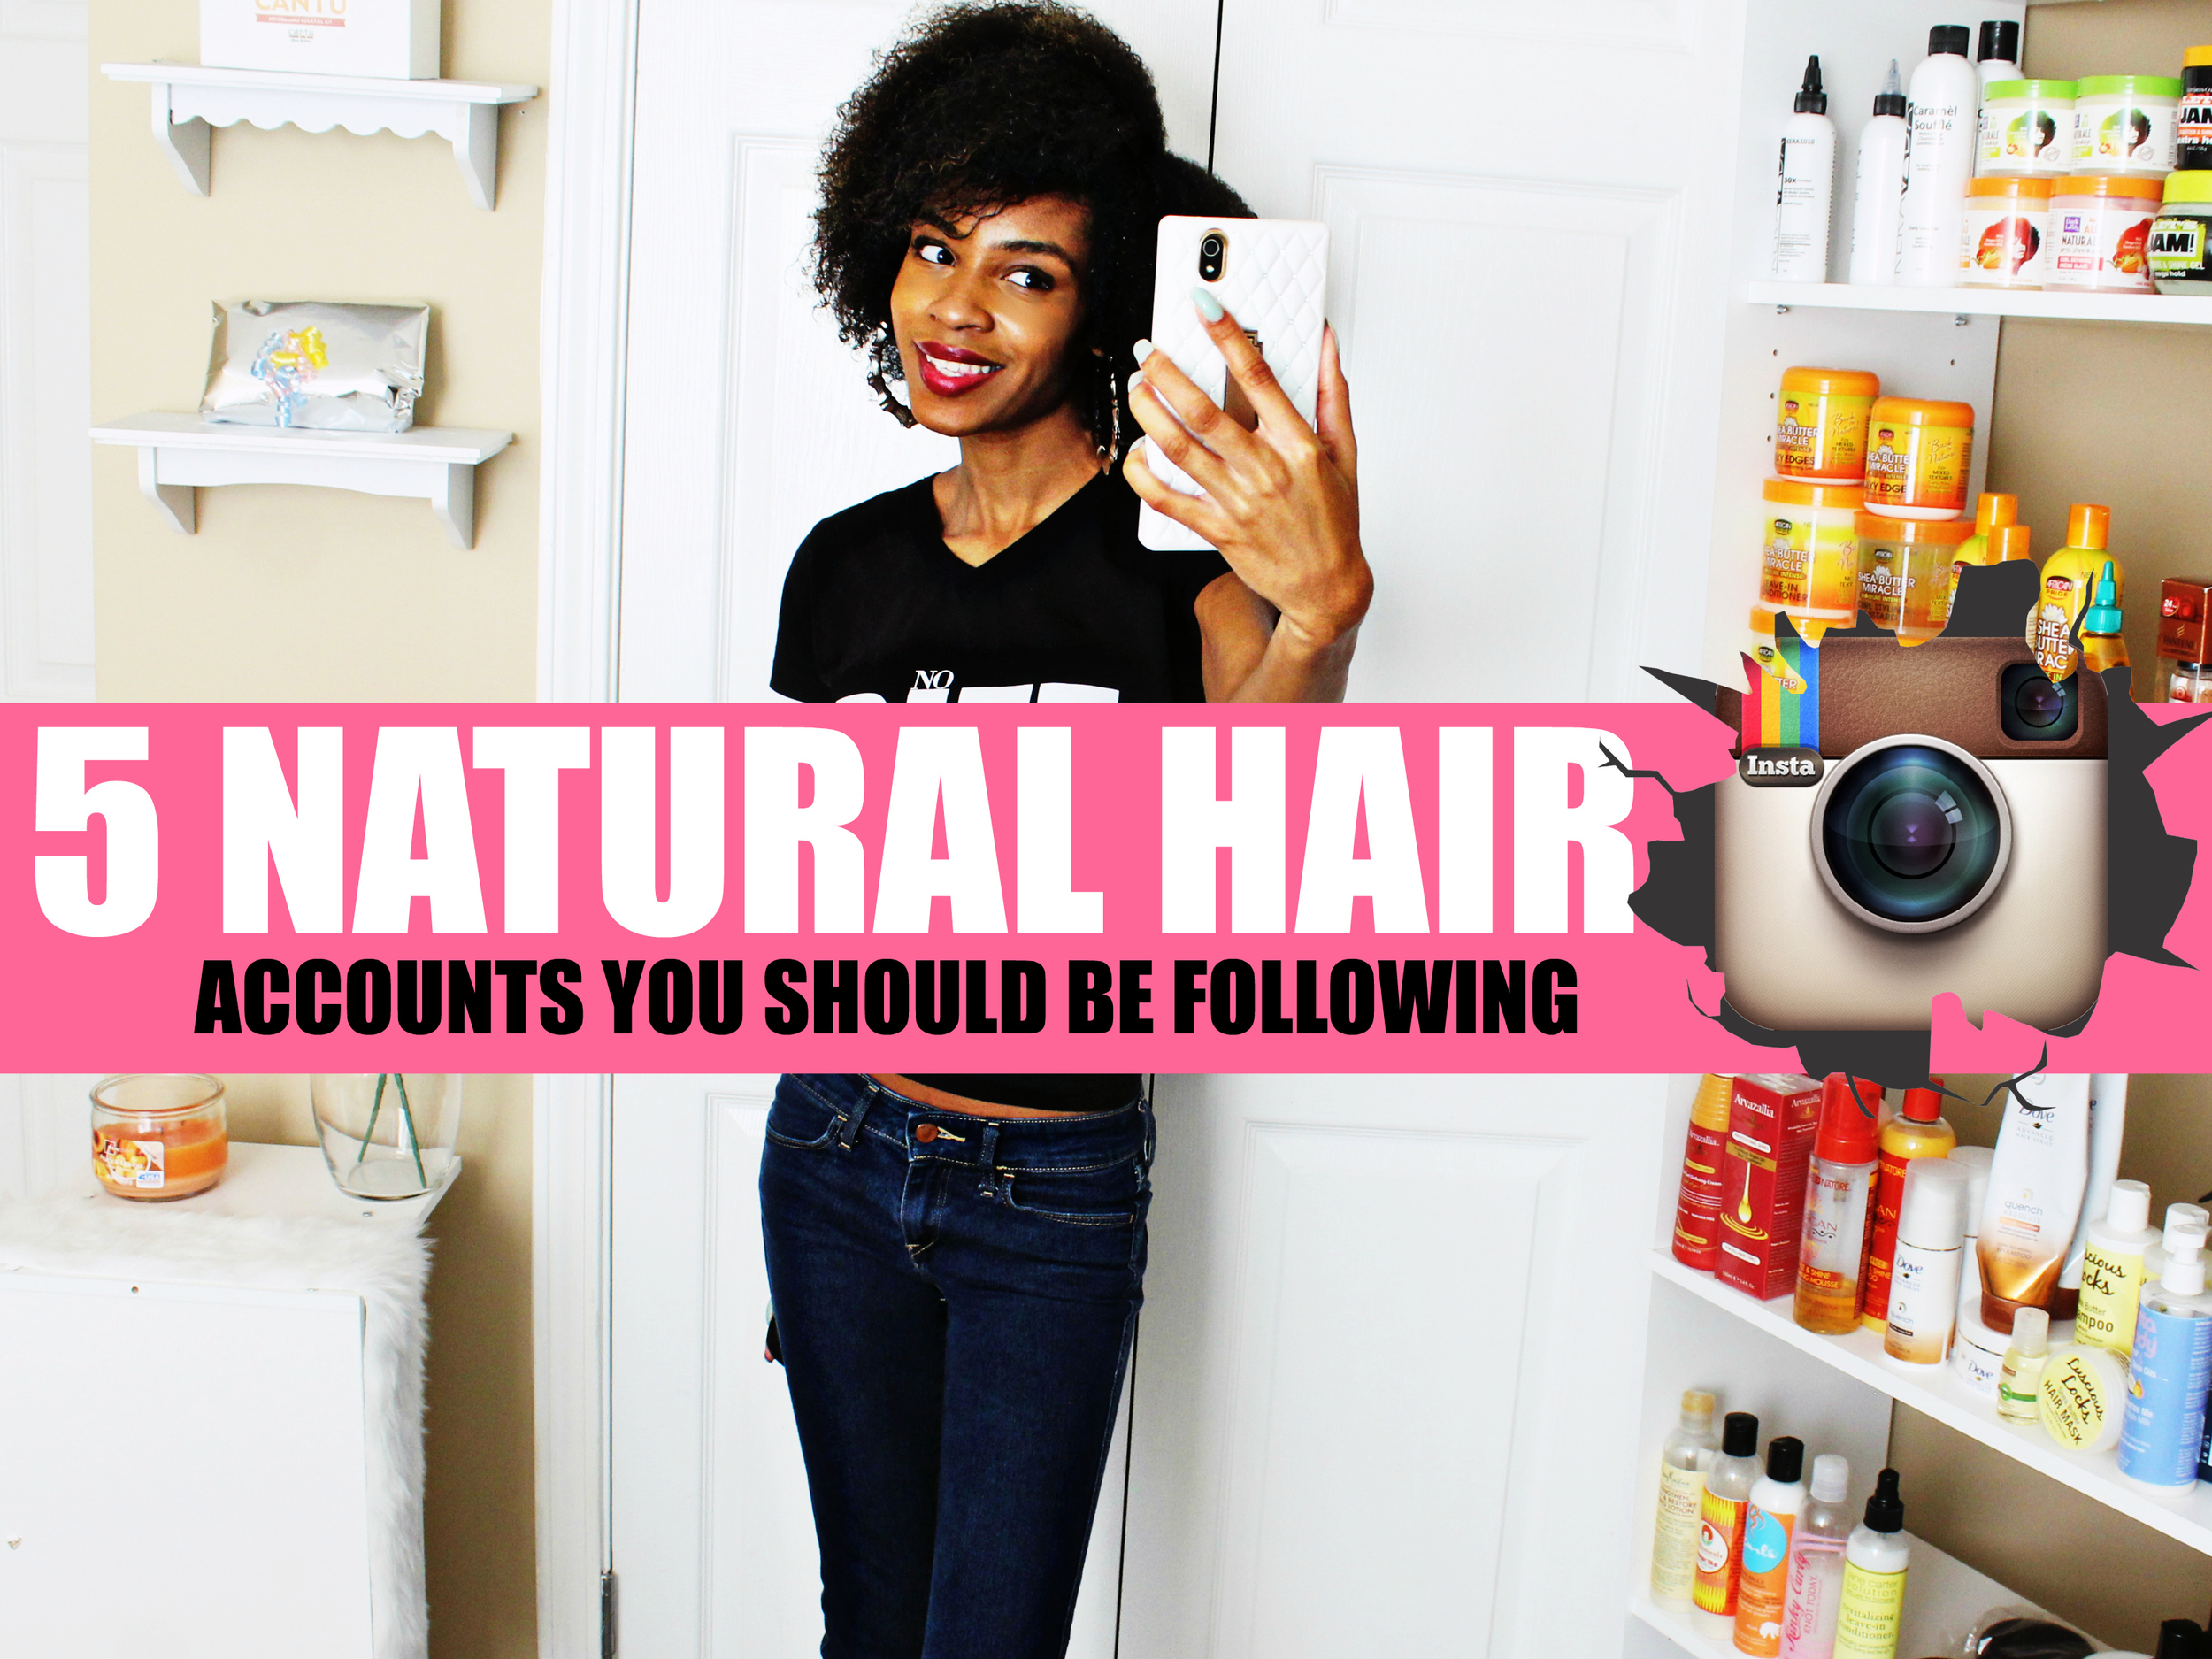 5 Natural Hair Instagram Accounts you should be following